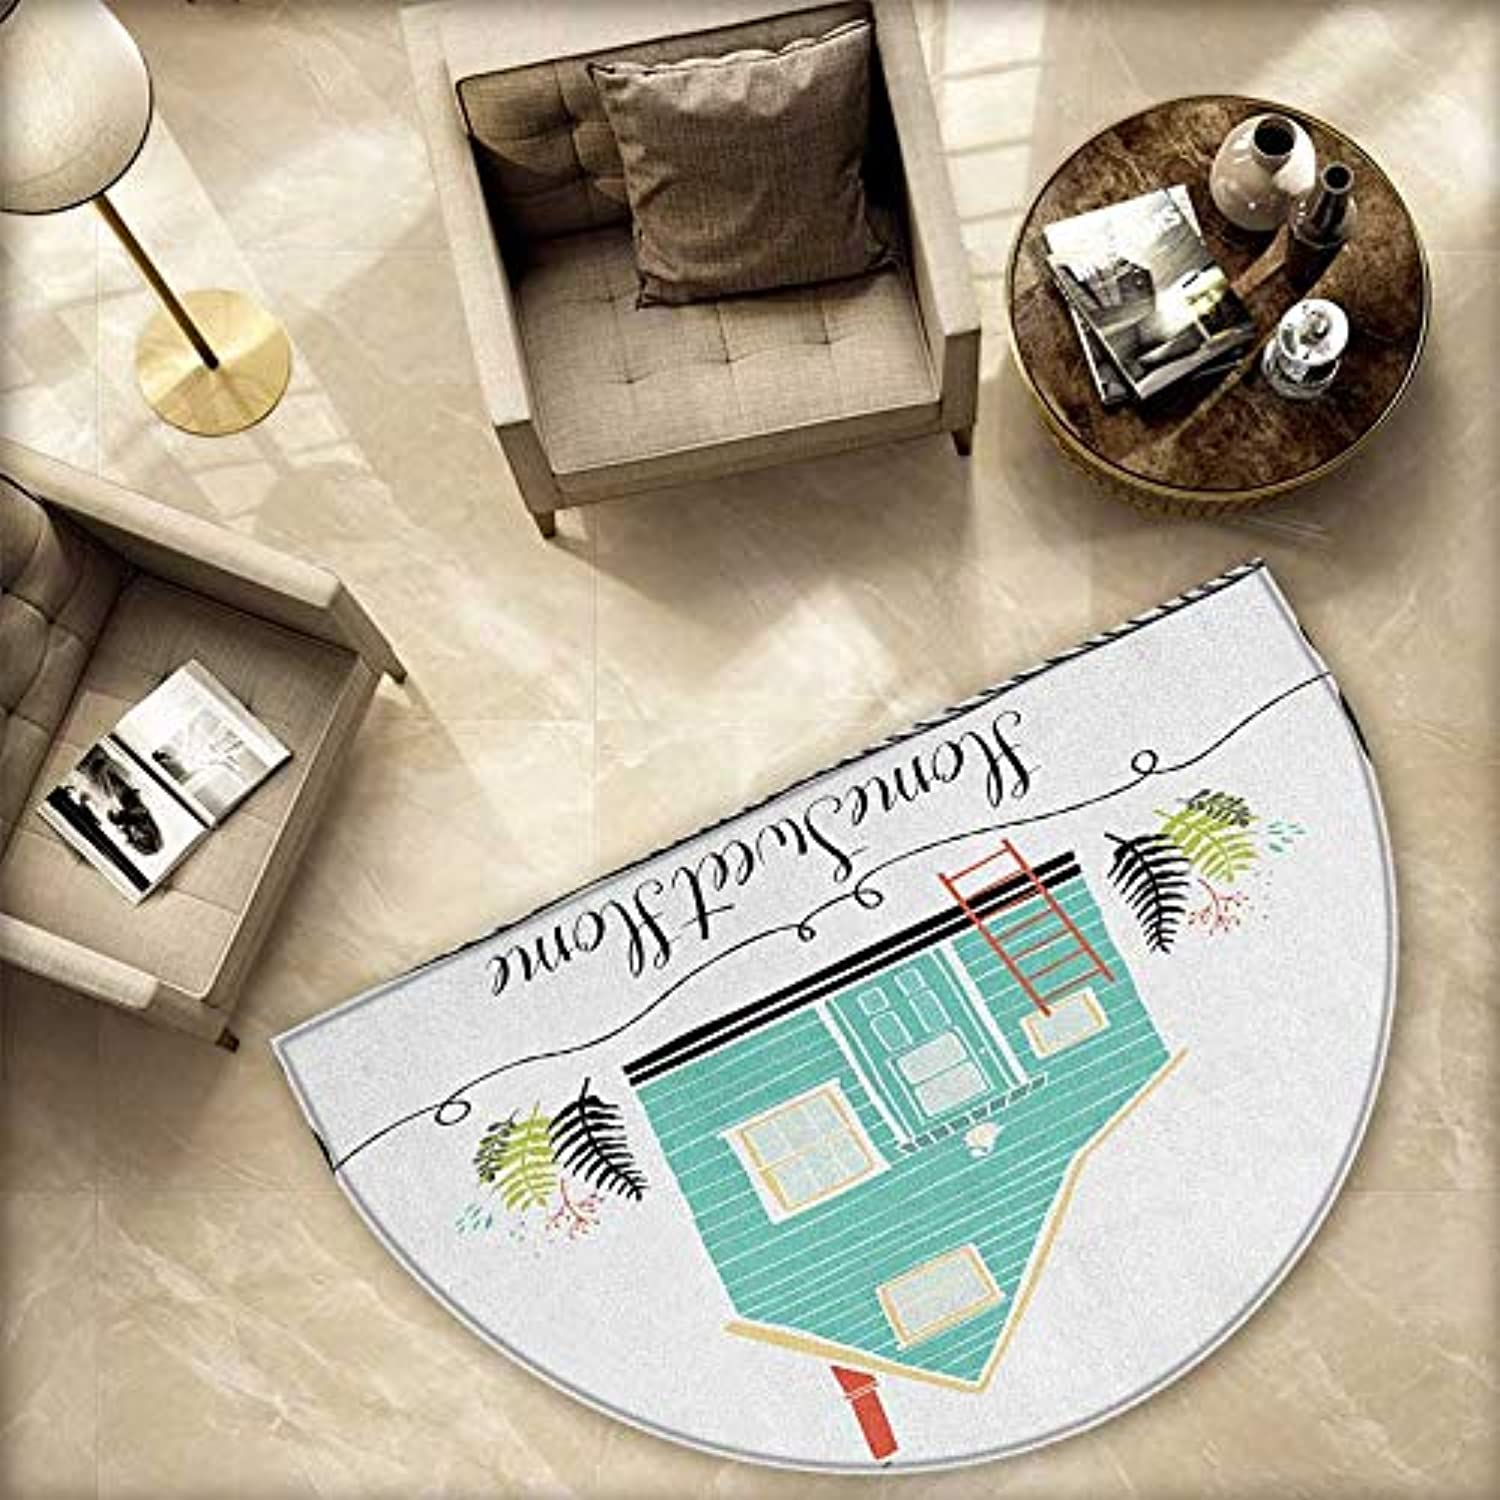 Home Sweet Home Semicircle Doormat Small House in The Countryside Rustic Theme Fern Leaves Grunge Doodle Frame Halfmoon doormats H 78.7  xD 118.1  Multicolor